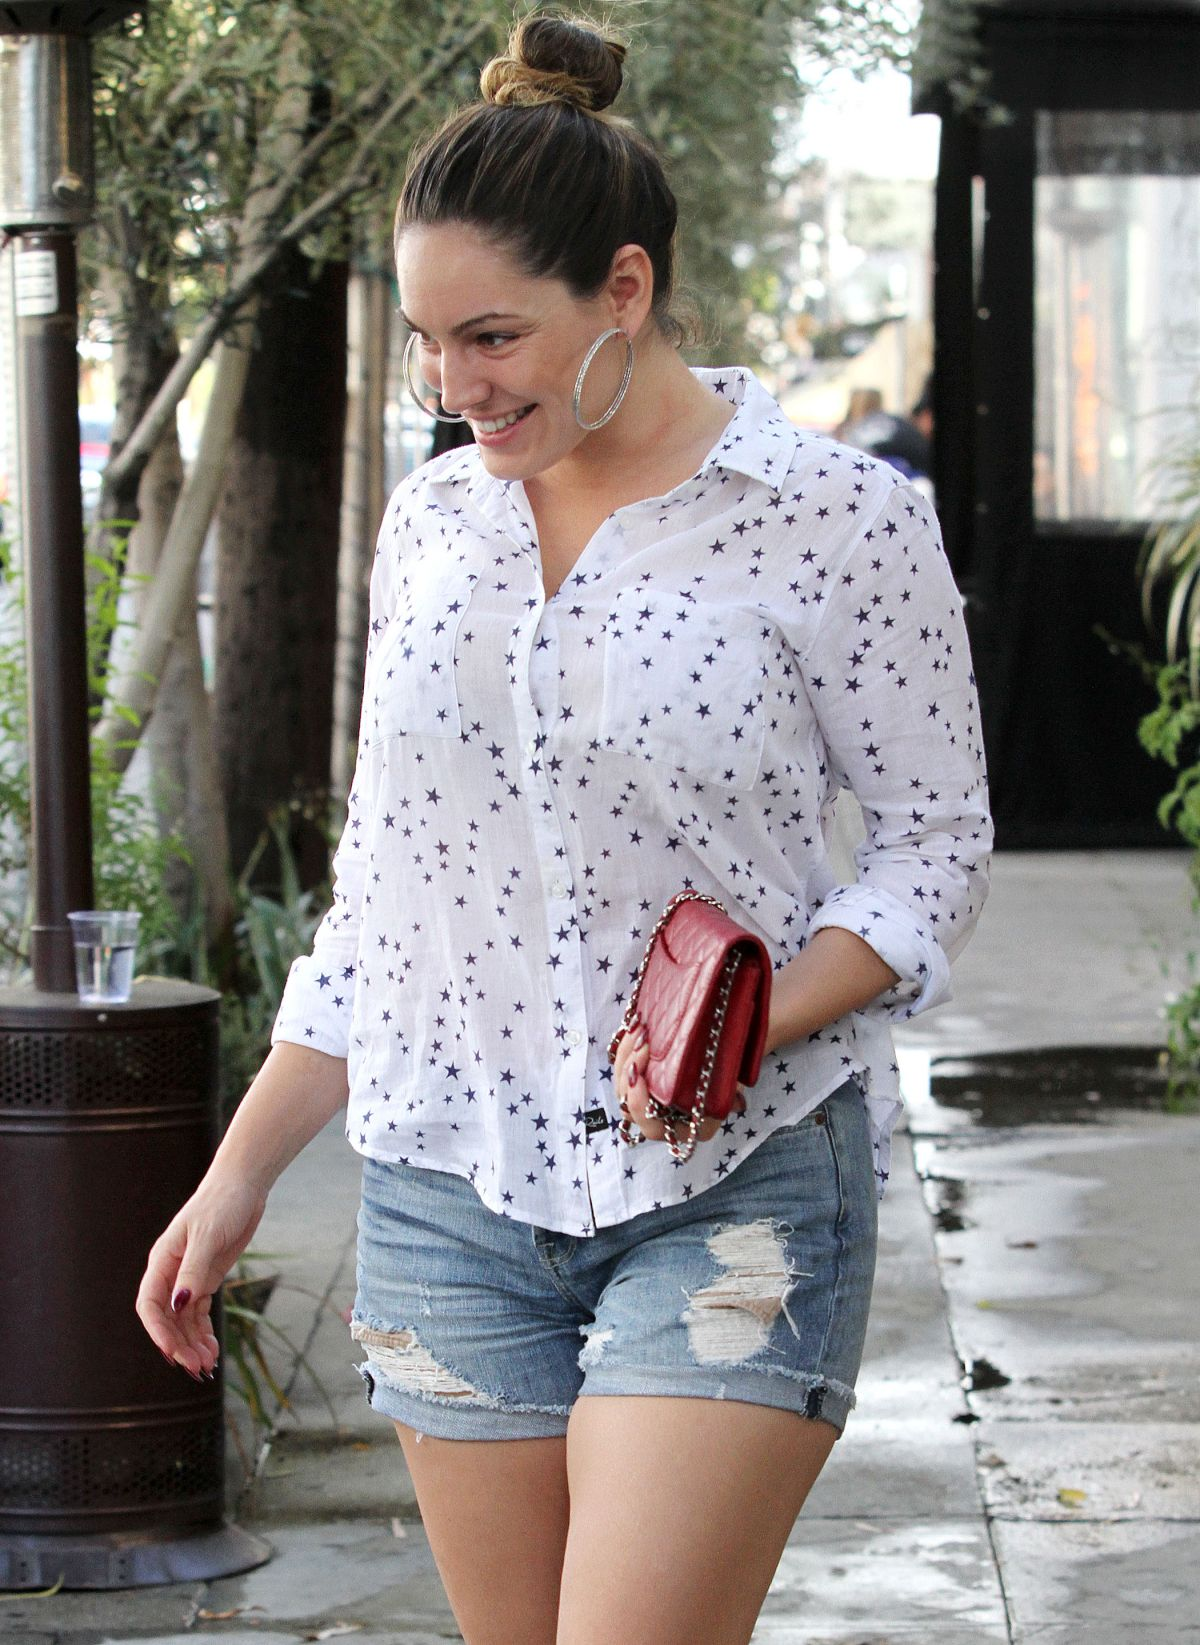 KELLY BROOK Heading to Lunch at Little Next Door in West Hollywood  sc 1 st  HawtCelebs & KELLY BROOK Heading to Lunch at Little Next Door in West Hollywood ...